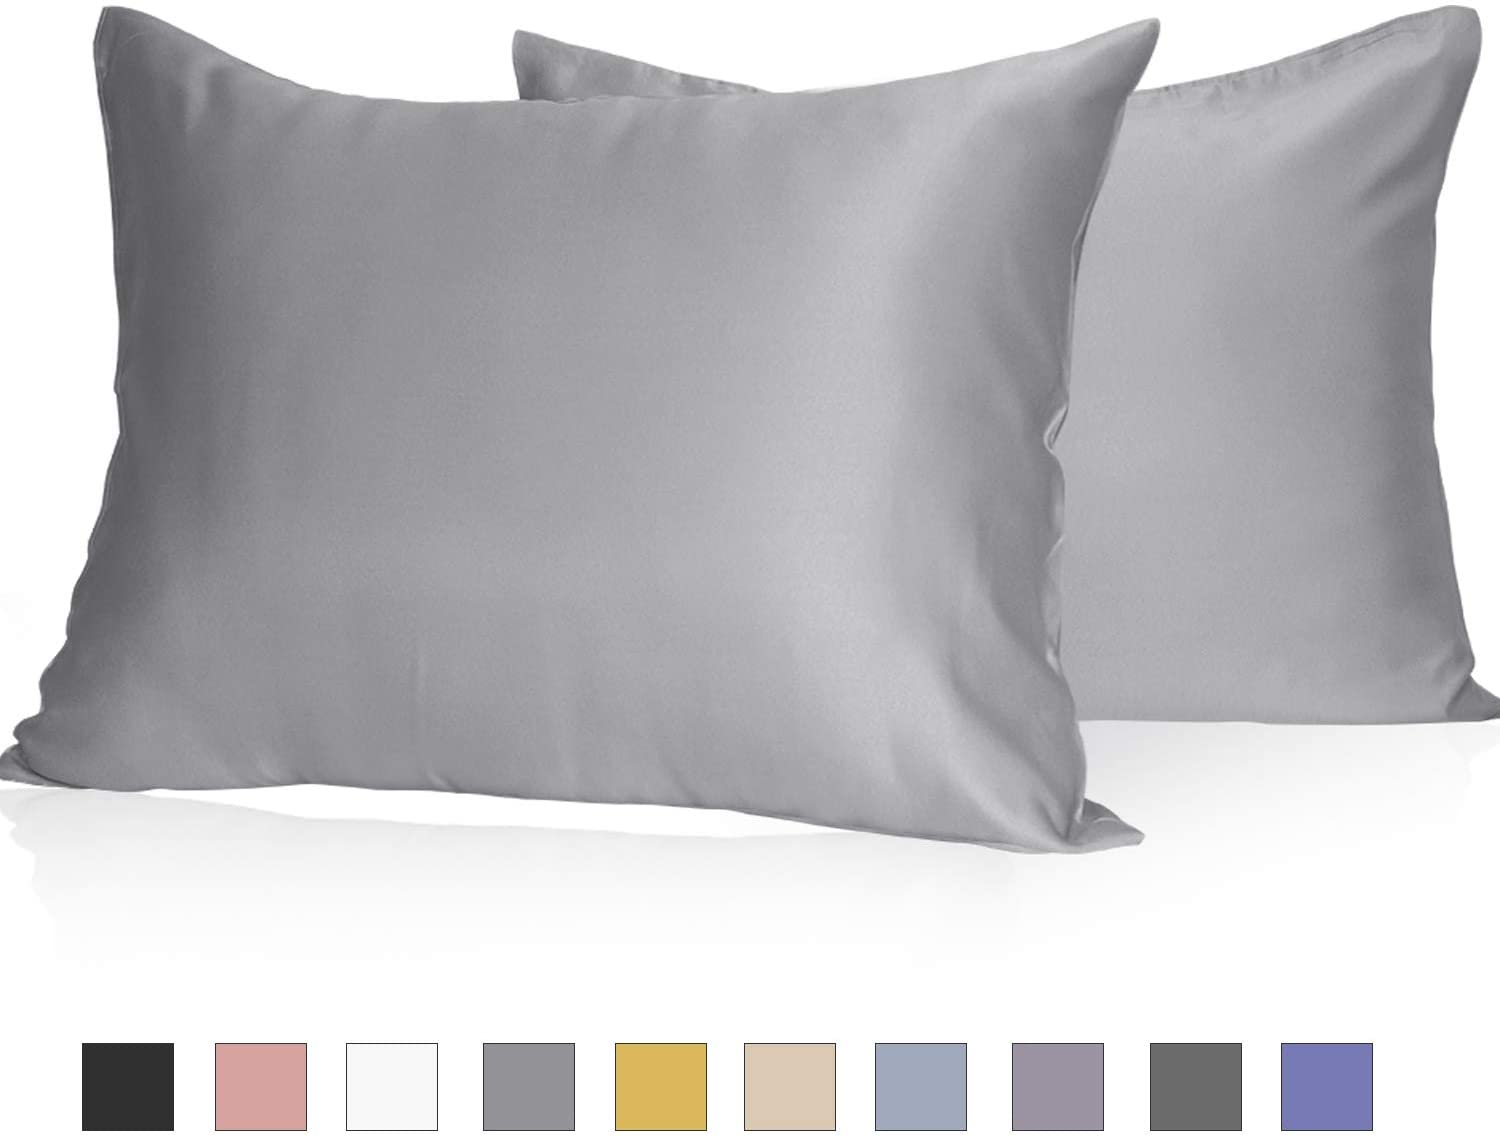 Love these pillowcases!